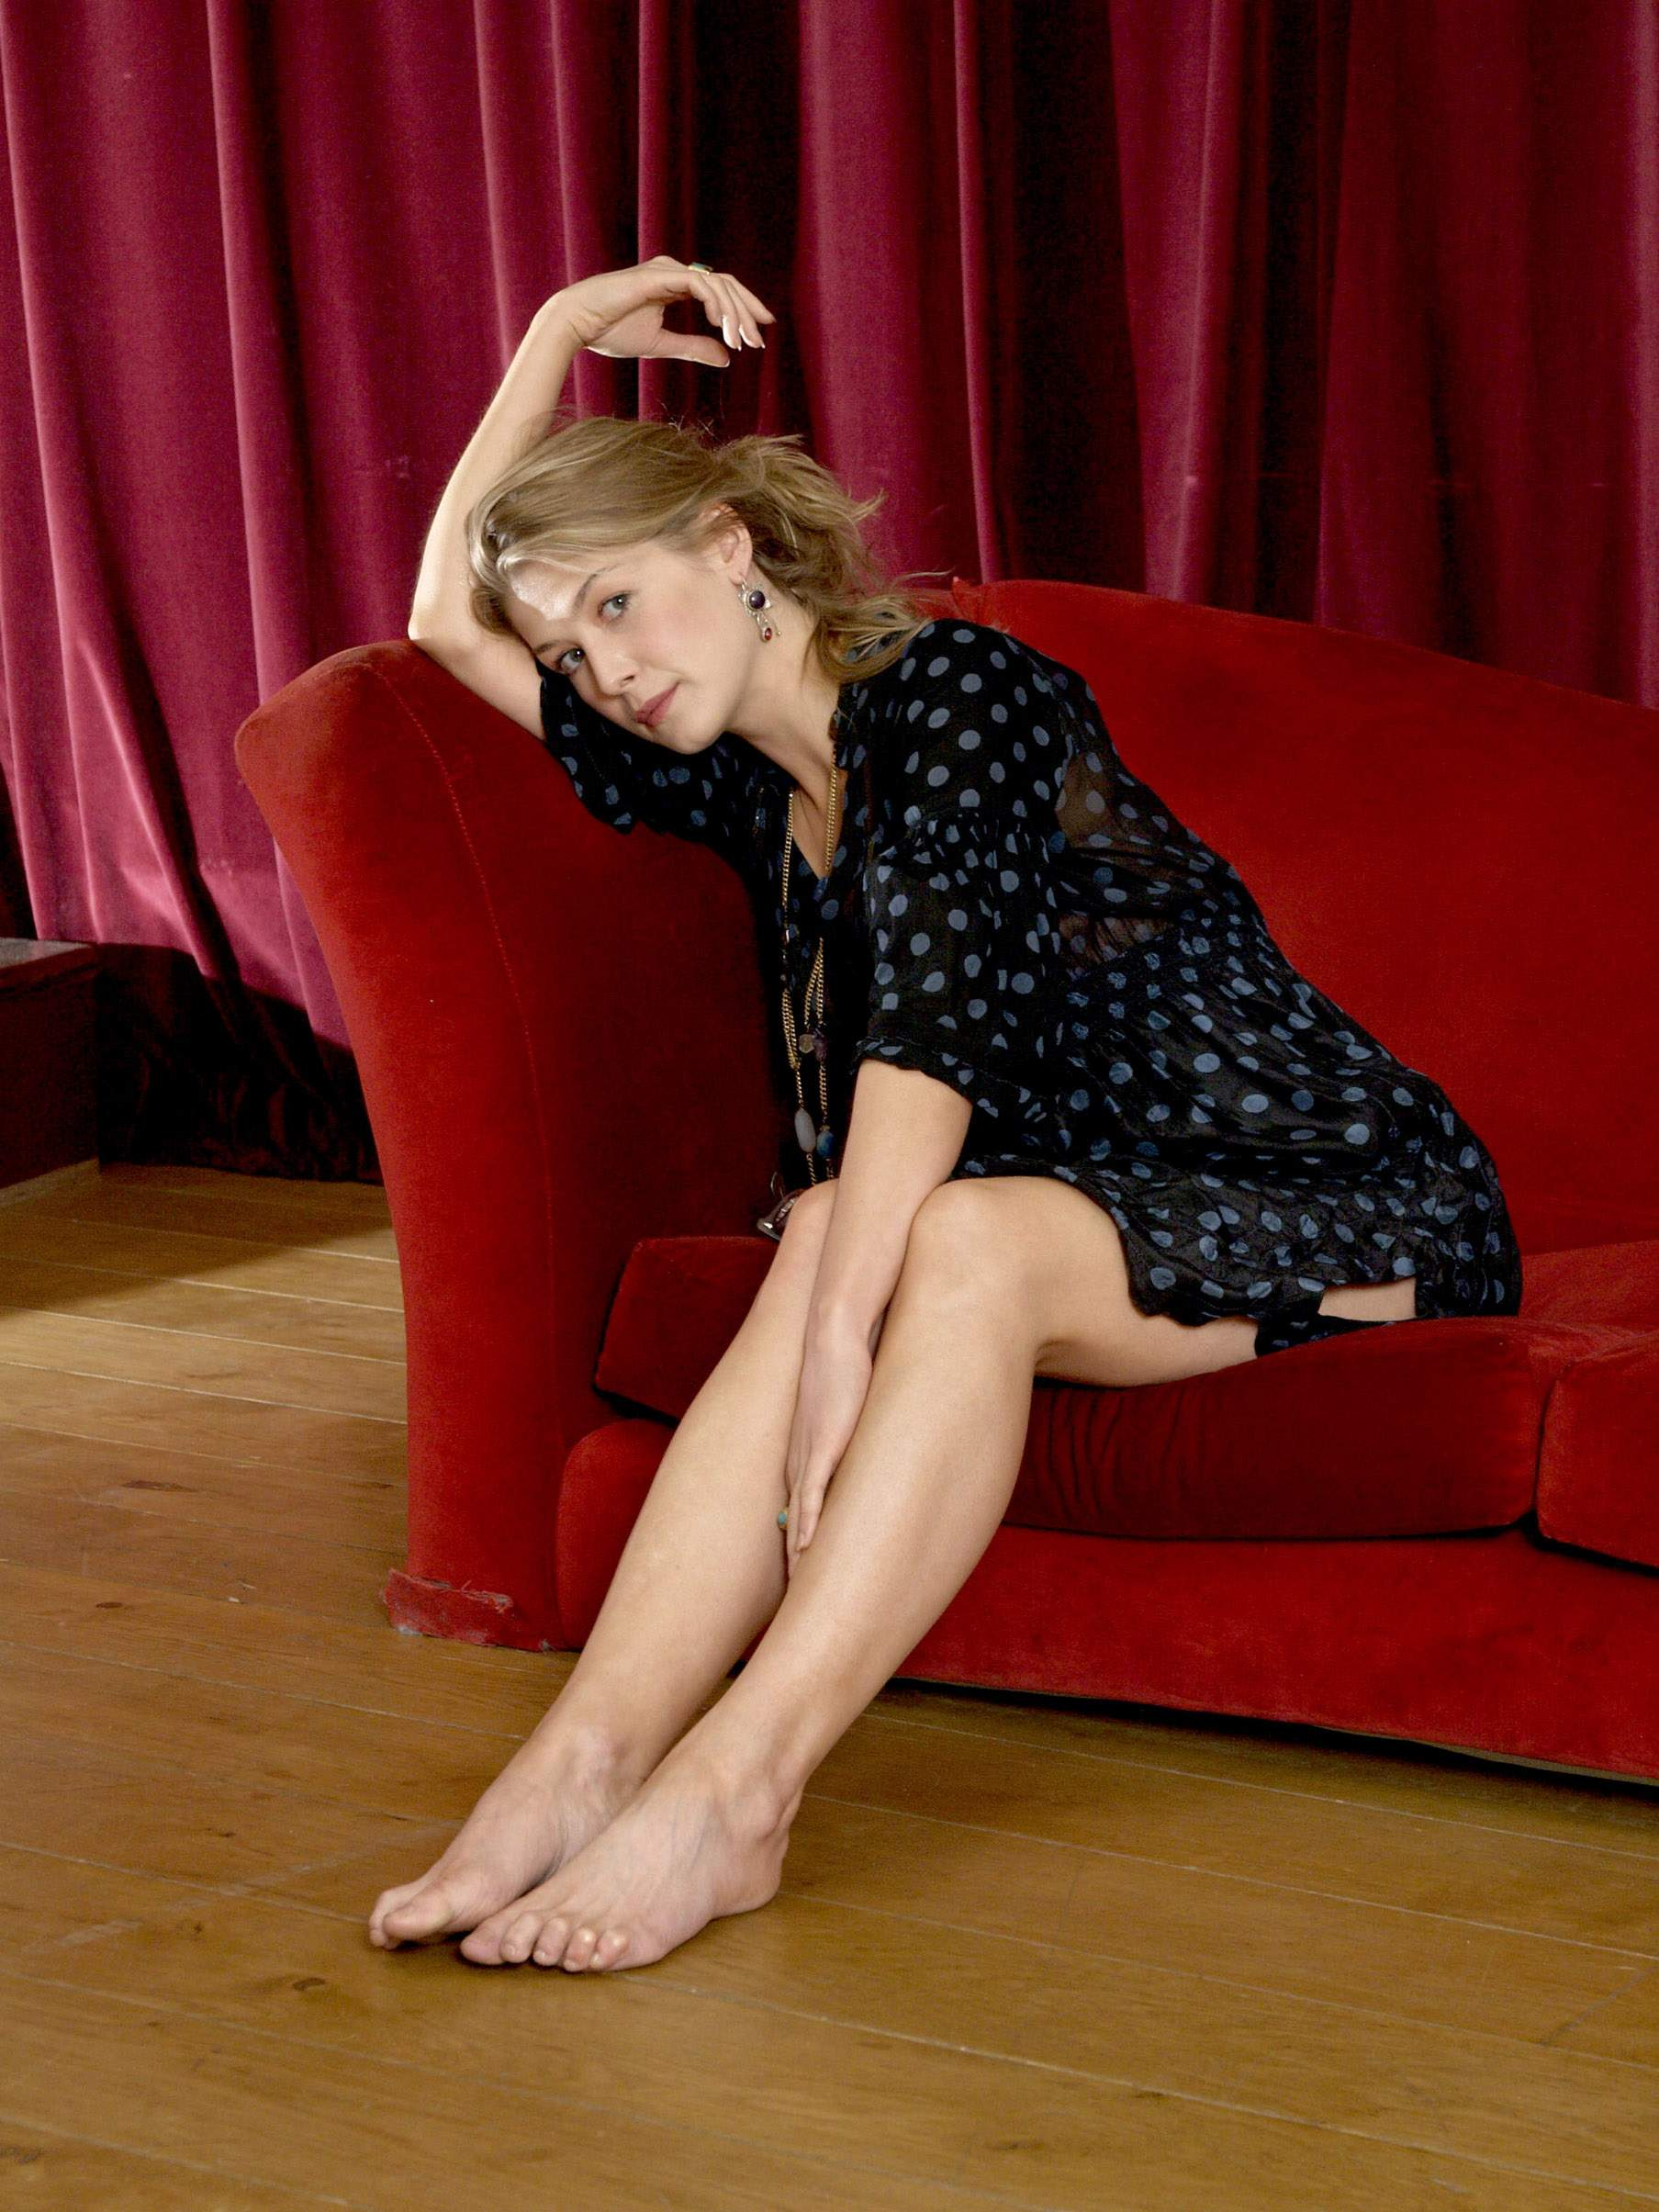 rosamund pike jack reacherrosamund pike gif, rosamund pike tumblr, rosamund pike gone girl, rosamund pike young, rosamund pike фото, rosamund pike husband, rosamund pike 2014, rosamund pike 2017, rosamund pike кинопоиск, rosamund pike interview, rosamund pike doom, rosamund pike movies, rosamund pike wallpaper, rosamund pike jack reacher, rosamund pike wikipedia, rosamund pike oscar, rosamund pike twitter, rosamund pike 2013, rosamund pike short hair, rosamund pike site